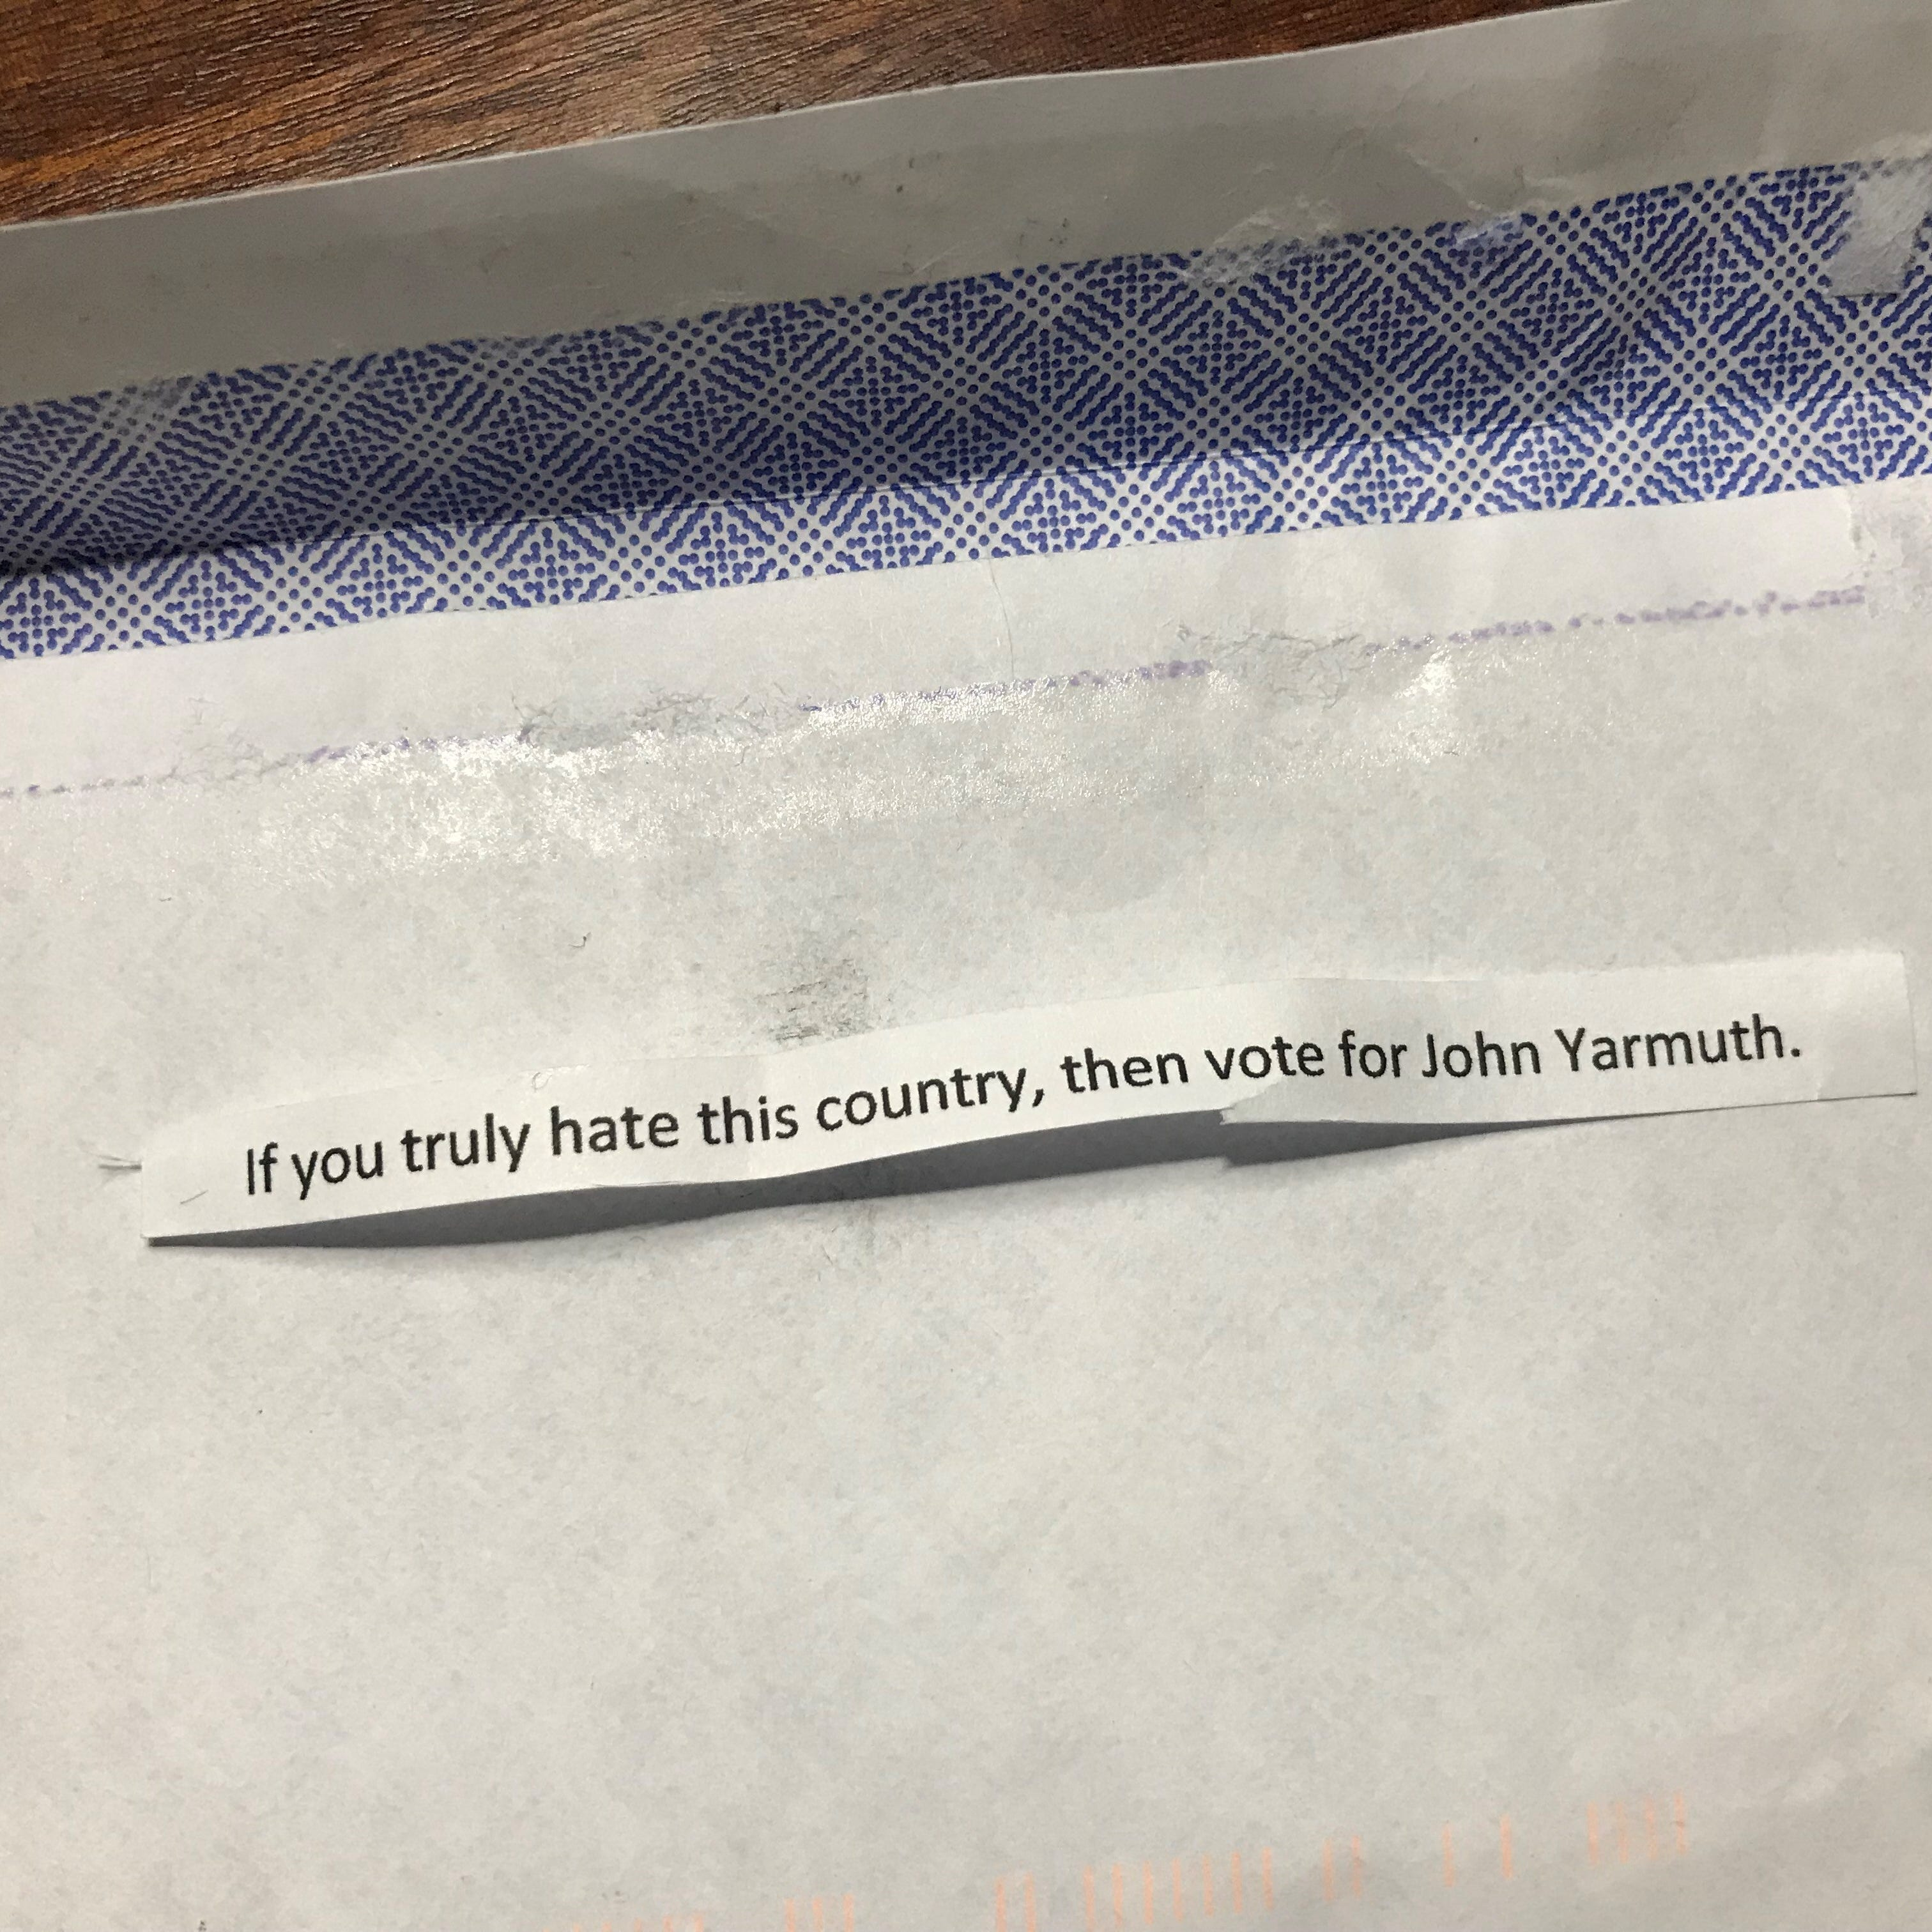 Residents on Rudy Lane in Louisville reported getting this letter in the mail urging them against voting for Democratic Rep. John Yarmuth who is running for re-election to represent Kentucky's Third Congressional District.